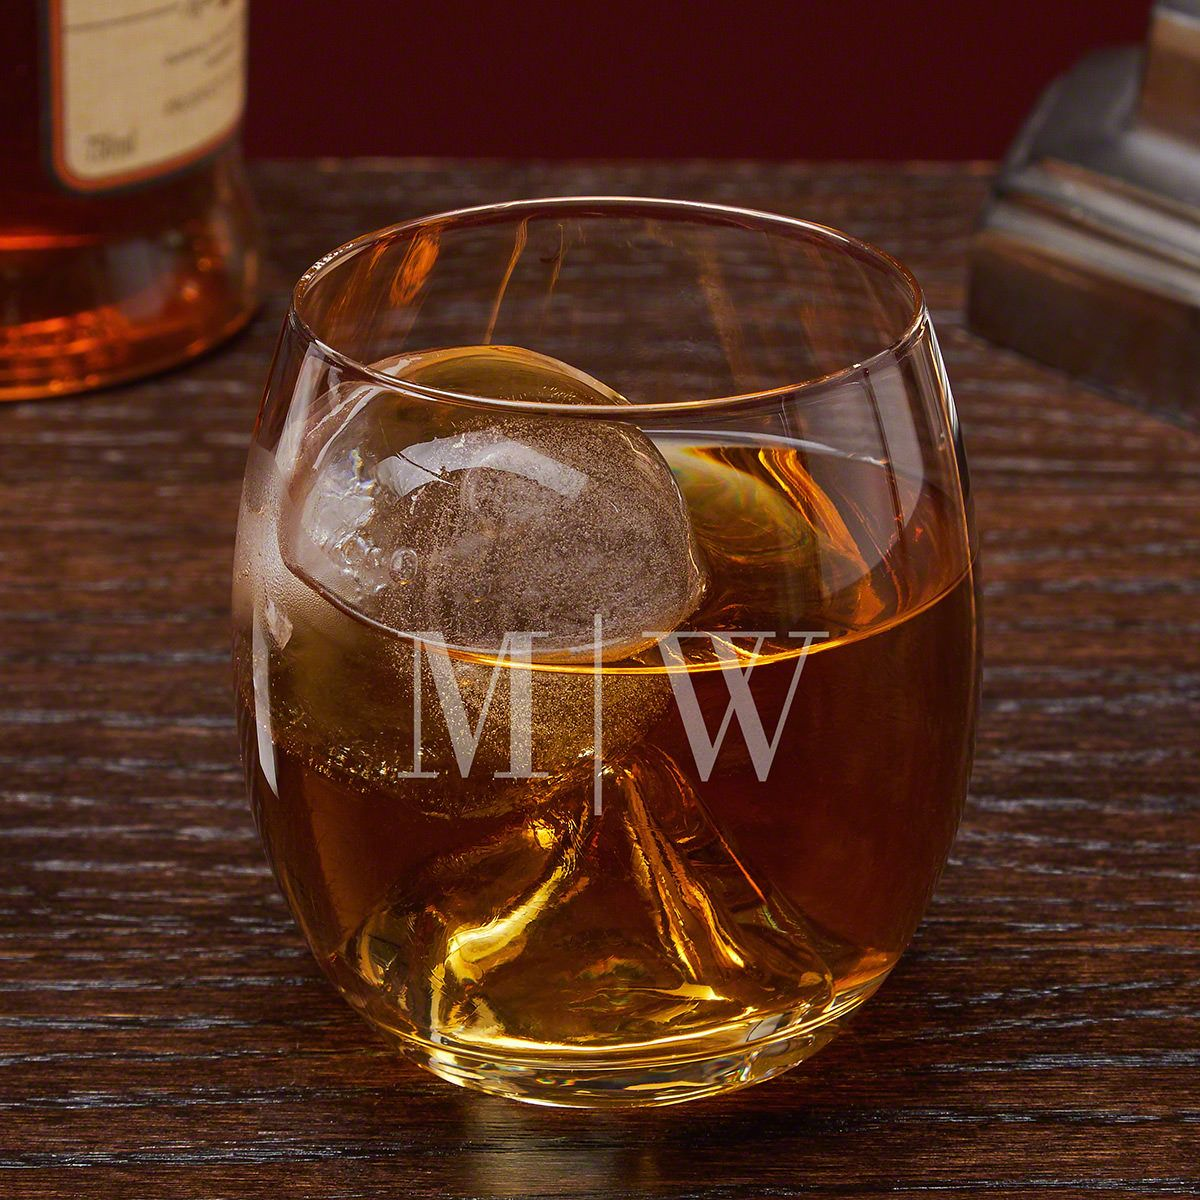 Quinton Personalized Whiskey Glass with Ice Ball